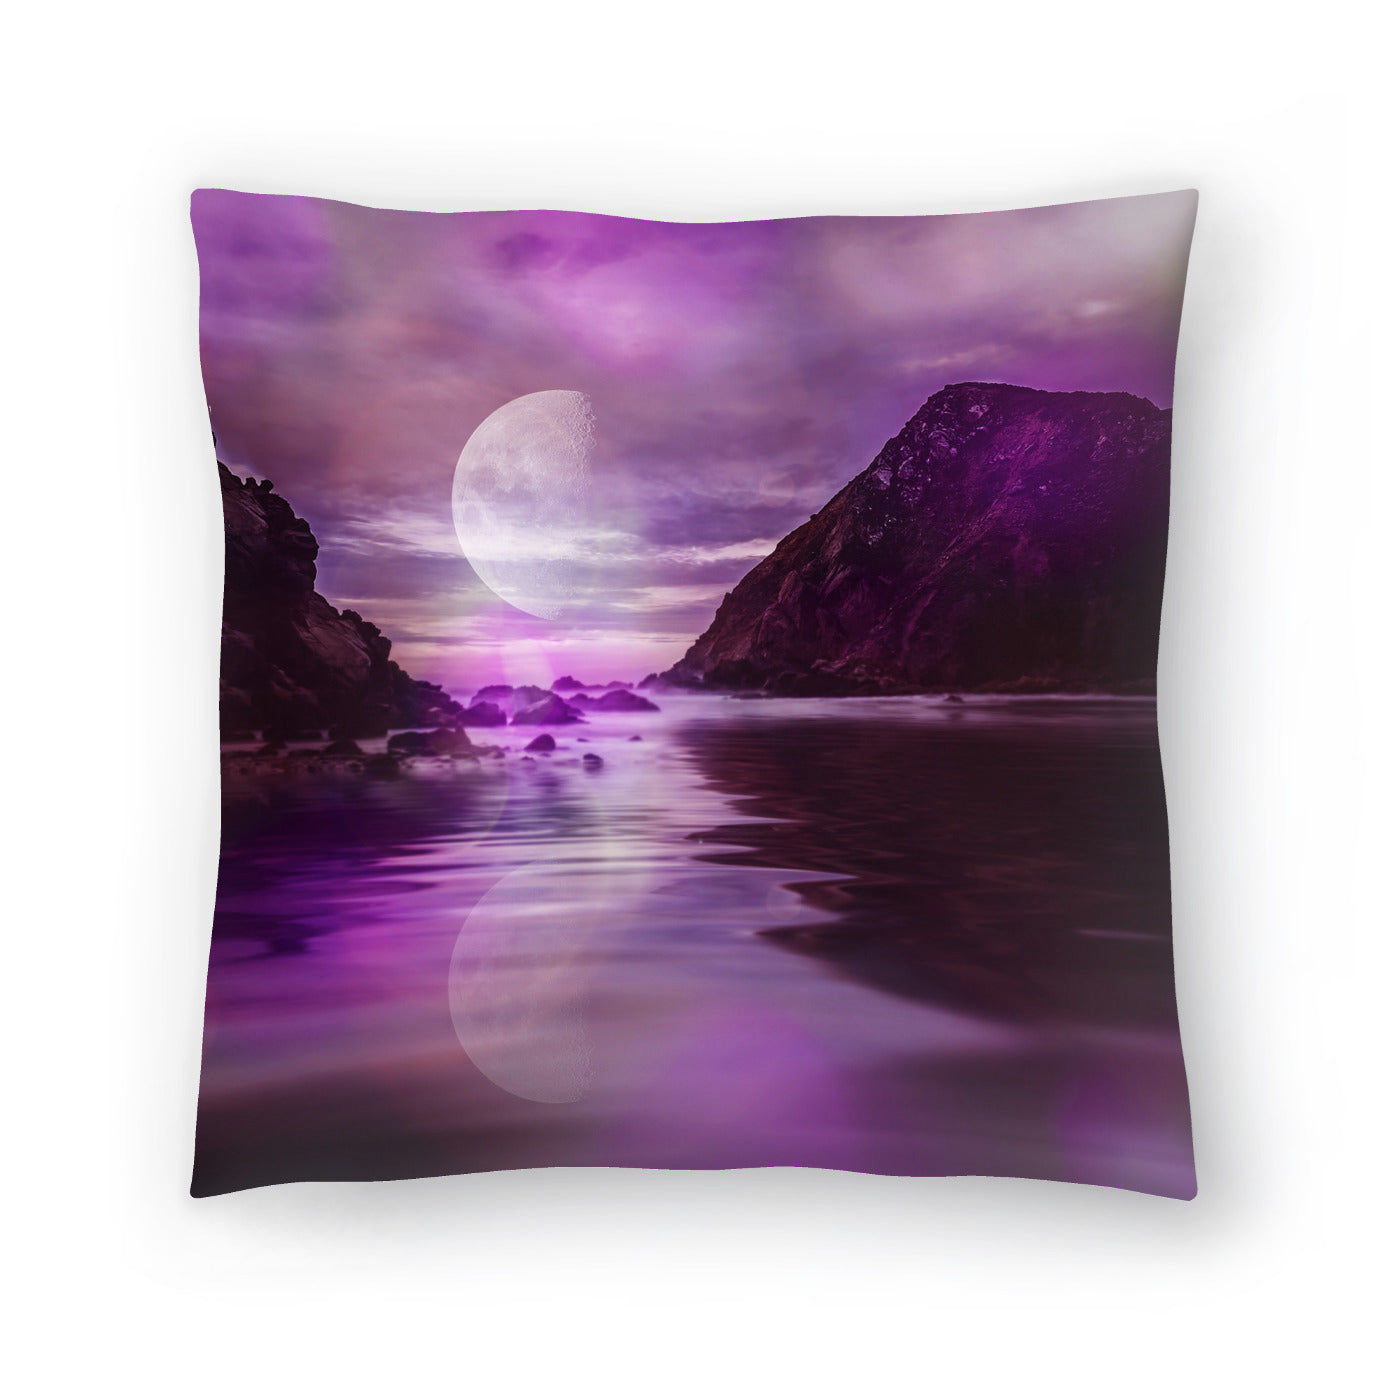 Landscape Surreal Purple by Lebens Art Decorative Pillow - Decorative Pillow - Americanflat